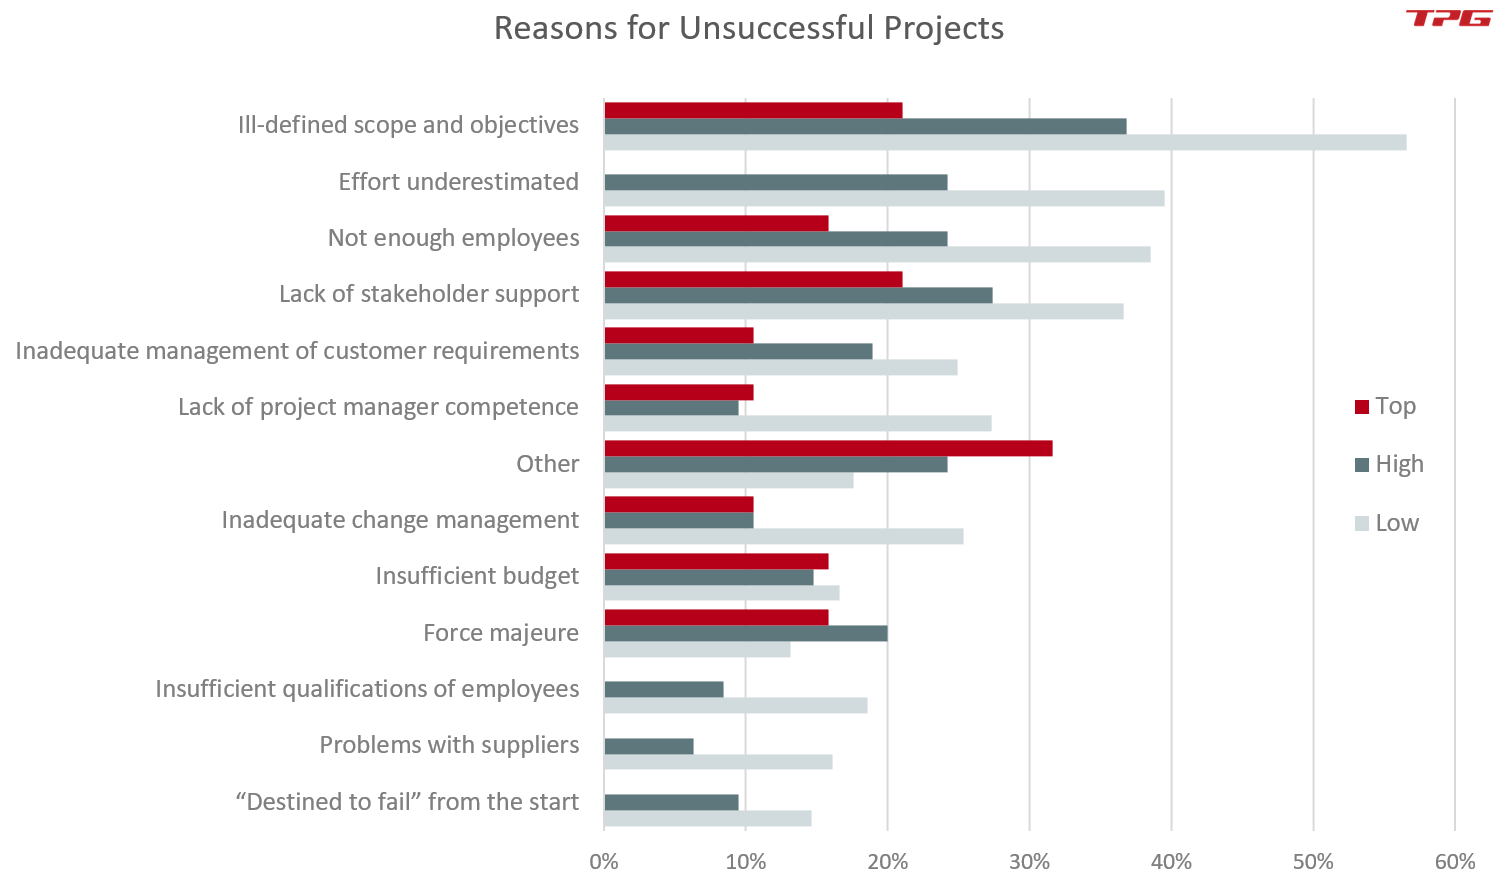 Reasons for unsuccessful projects – important for the PMO (project management office)